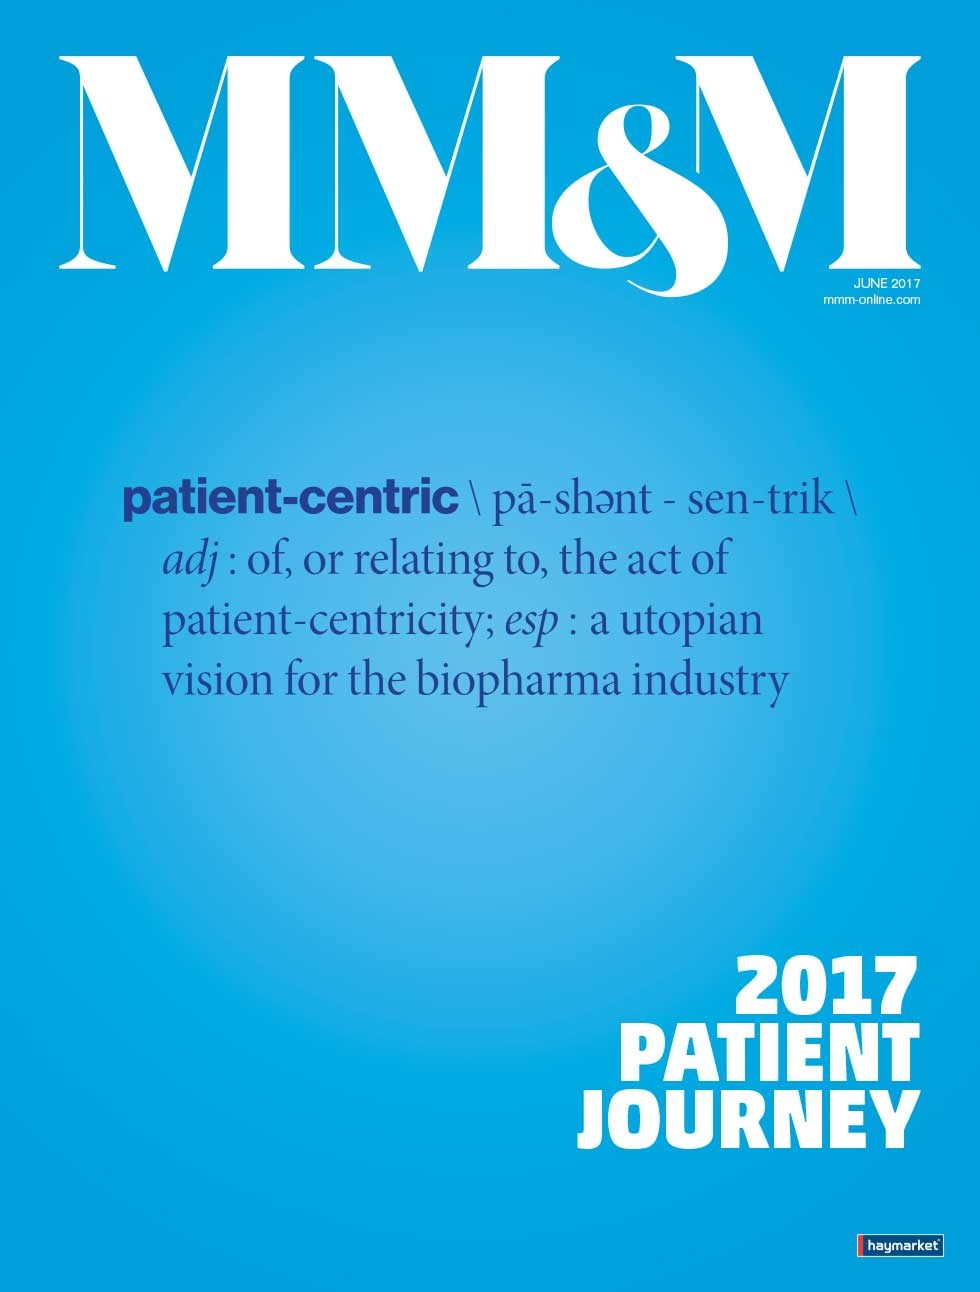 Read the complete Patient Journey 2017 digital edition